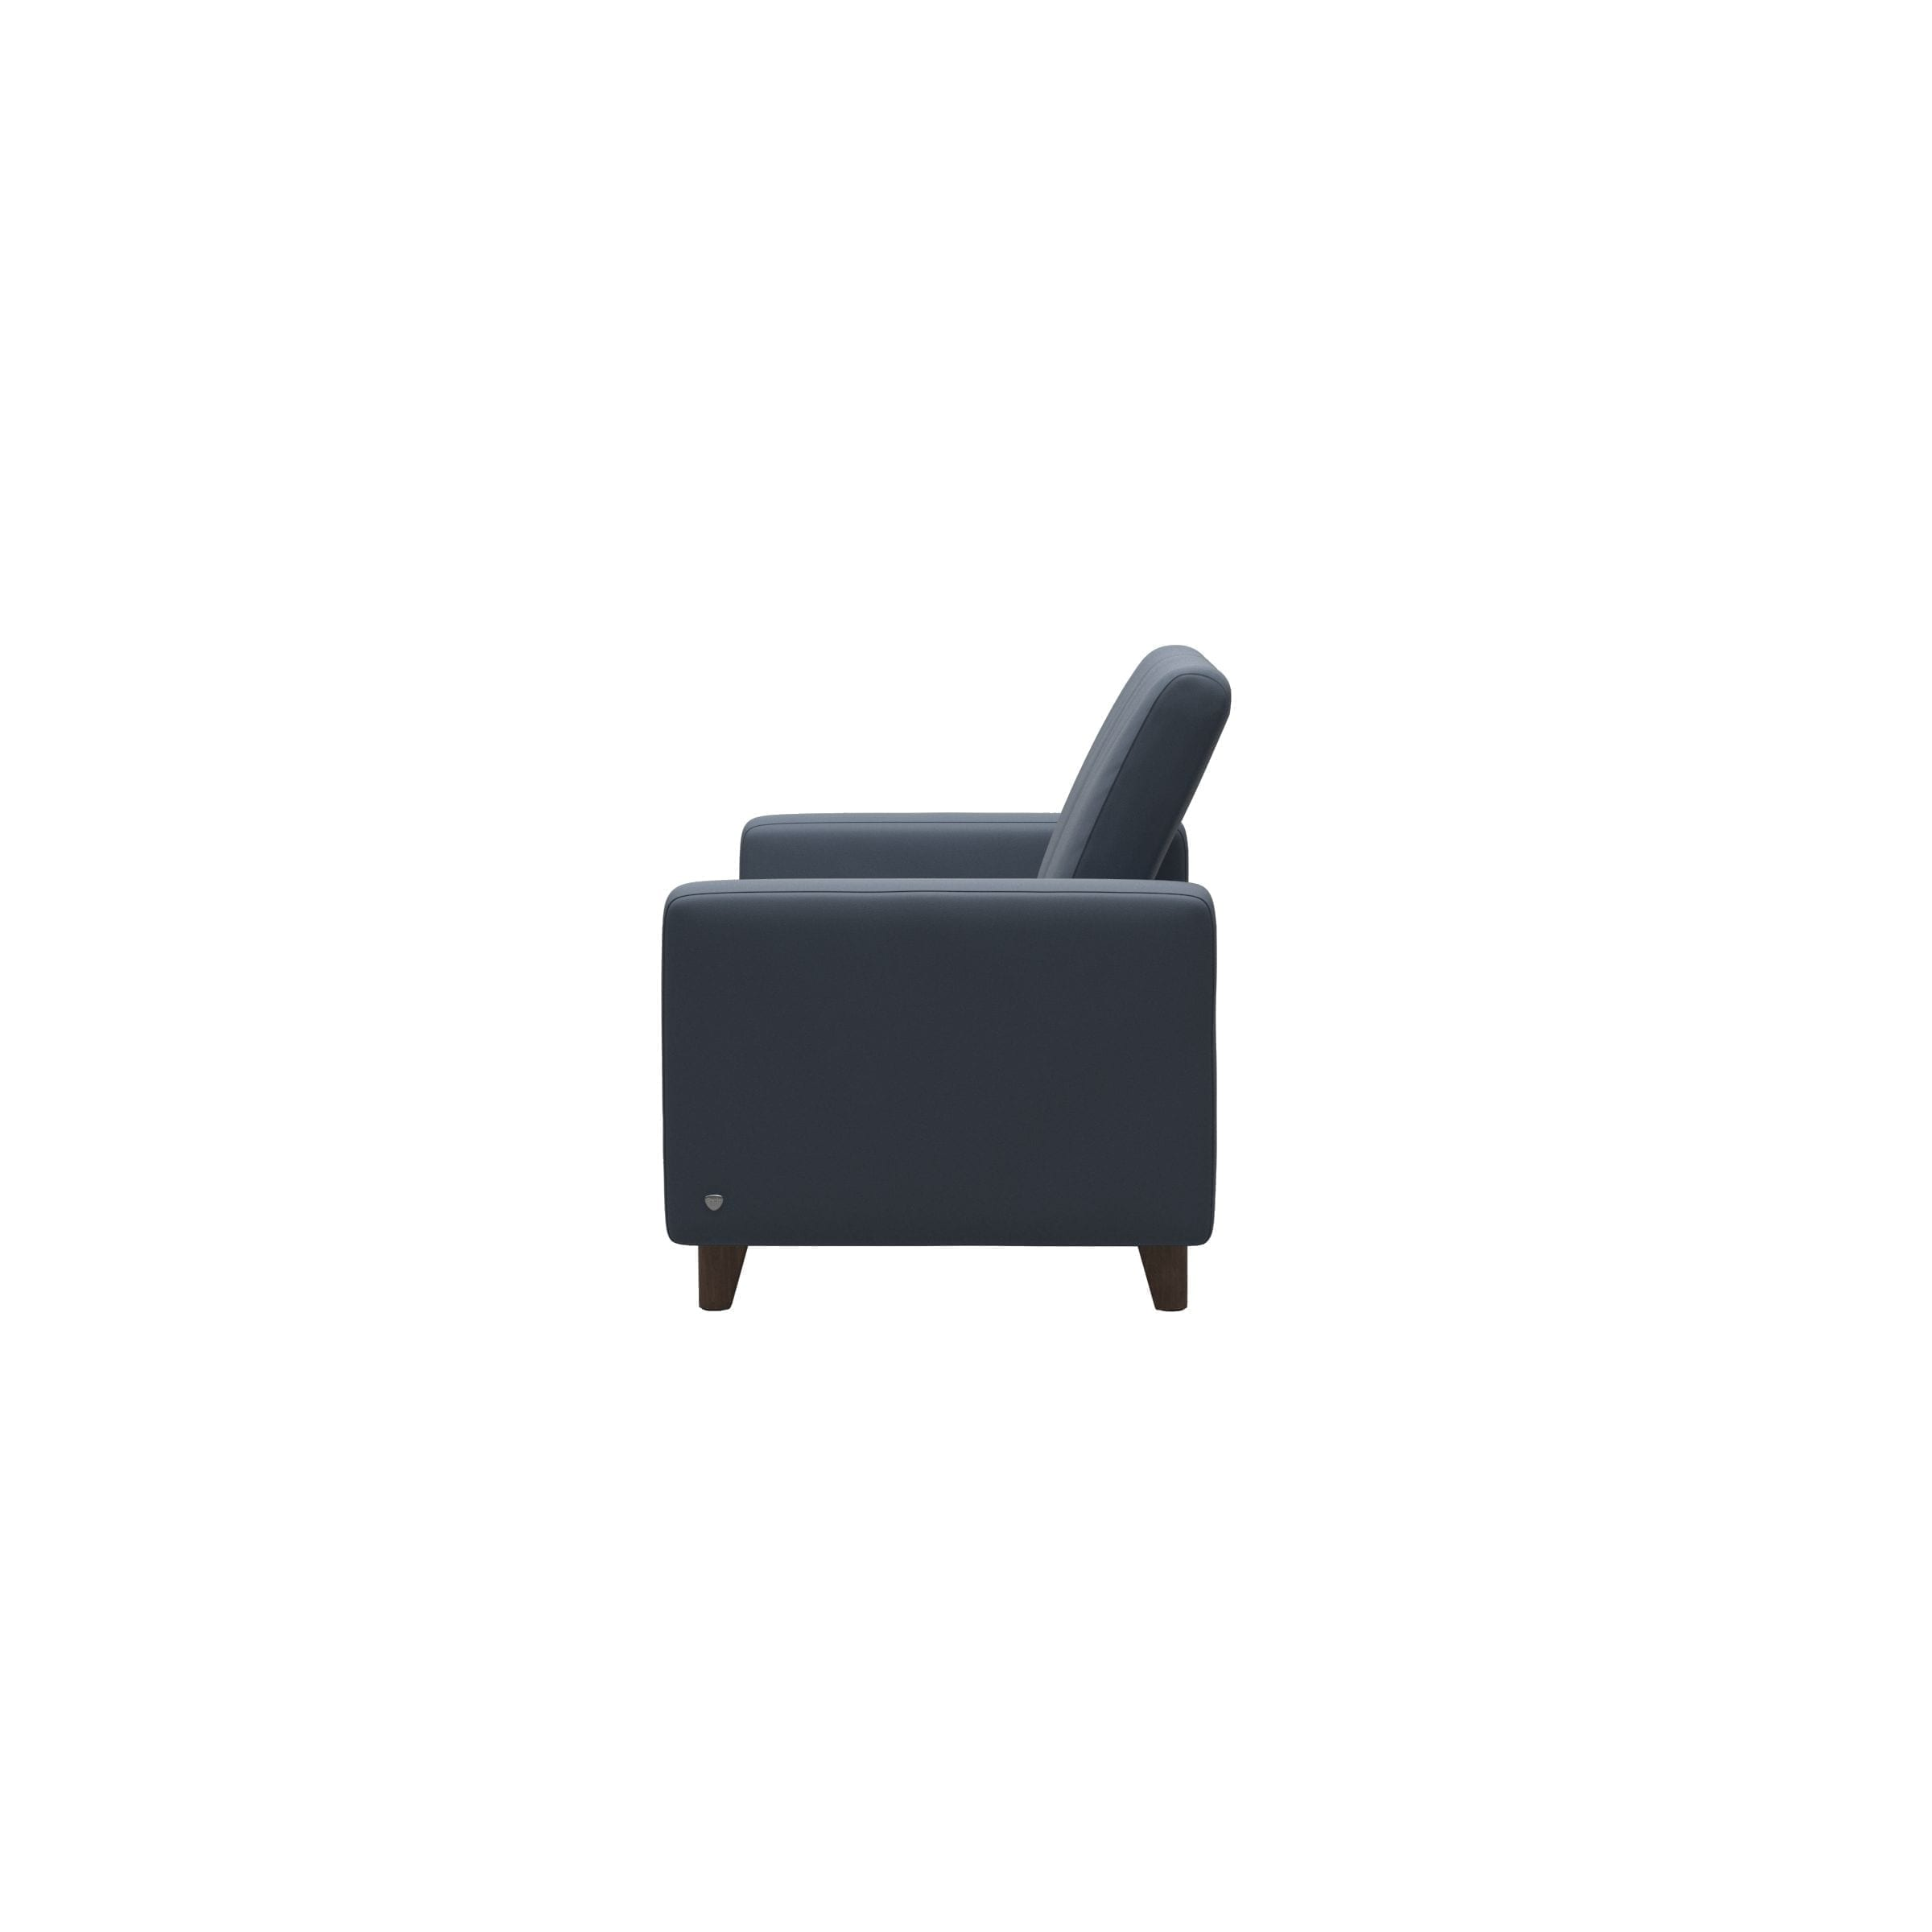 Arion 19 A20 Stressless Loveseat Low Back 2